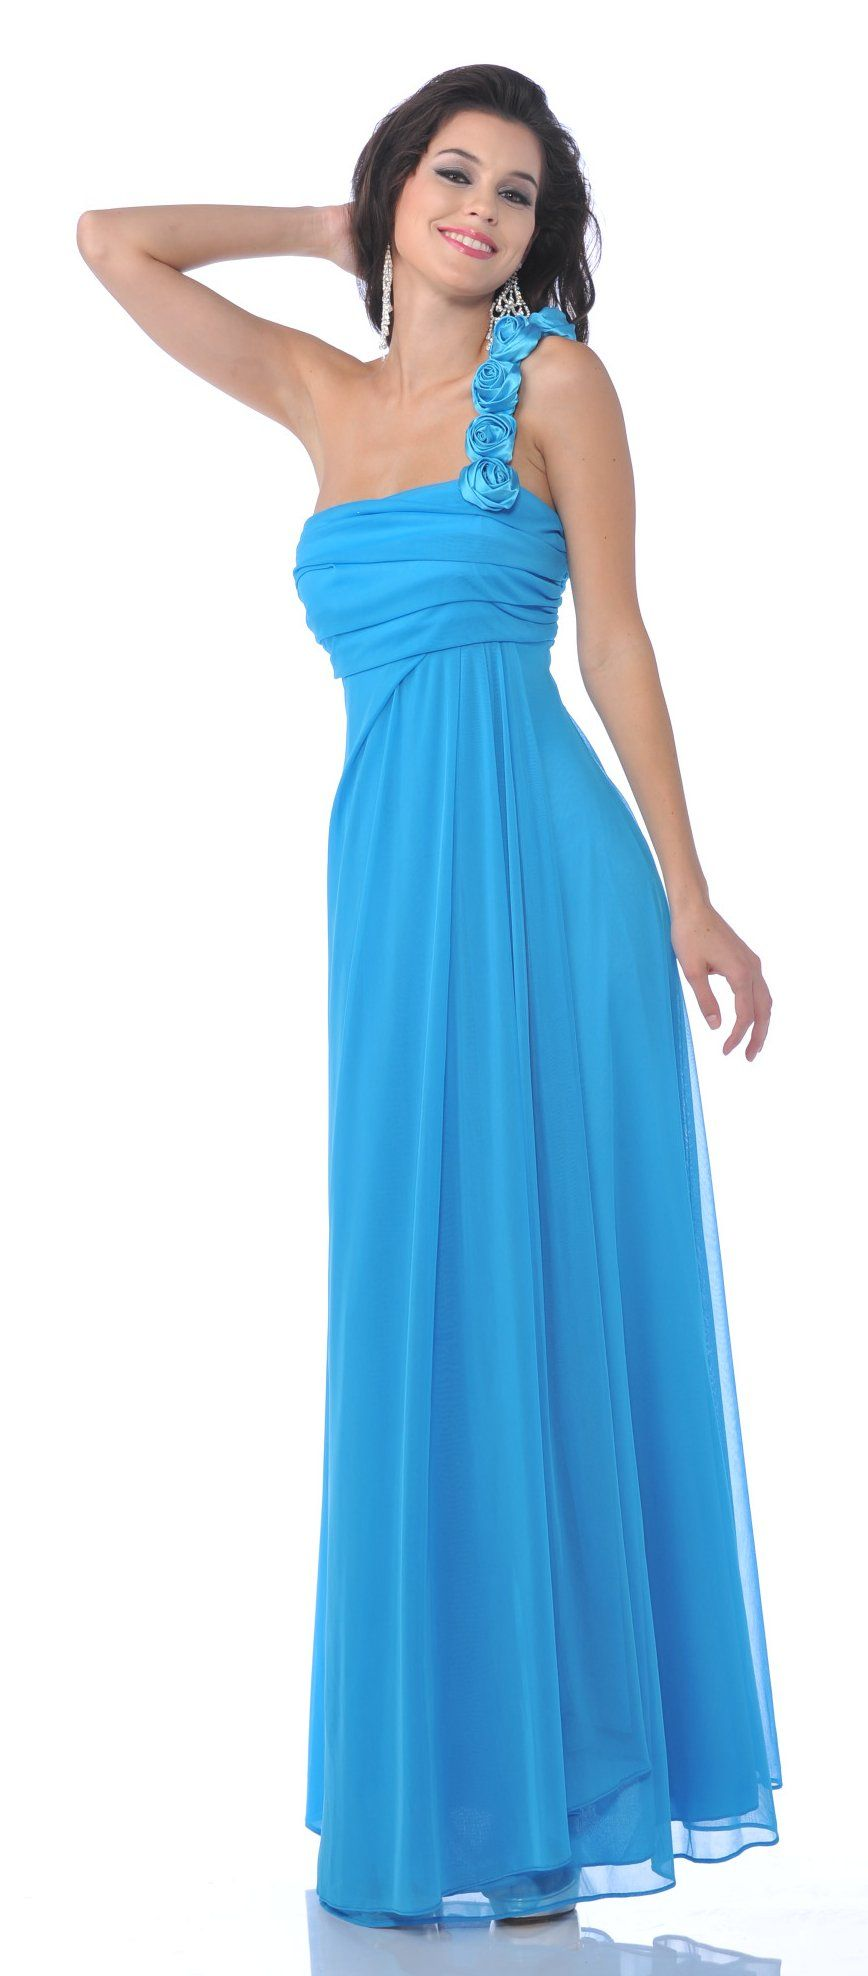 CLEARANCE - One Shoulder Flowy Chiffon Turquoise Dress Long (Size XL ...